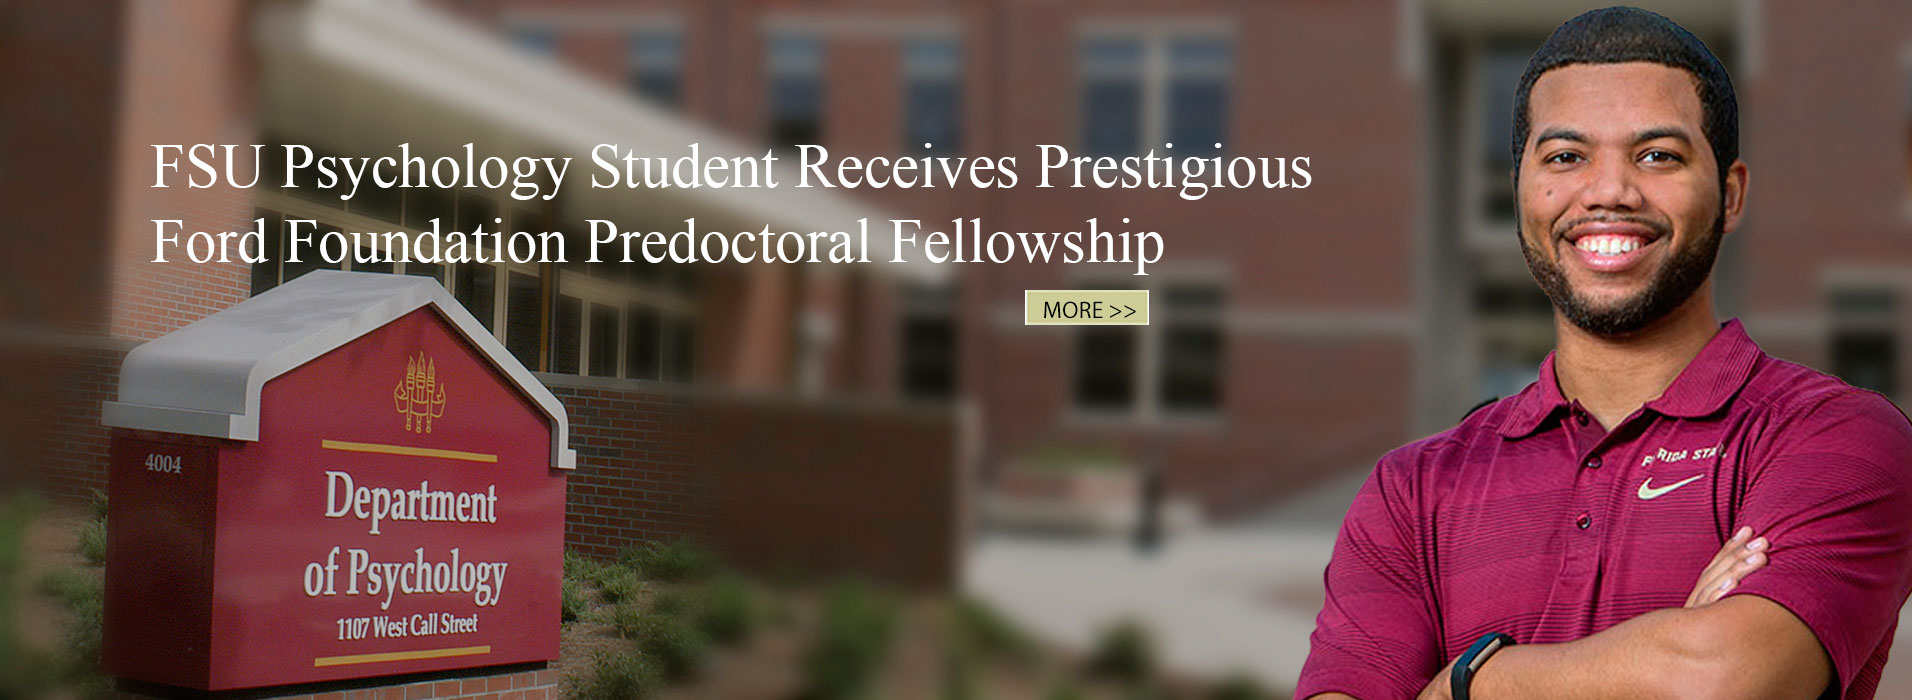 Psychology Student Receives Ford Foundation Predoctoral Fellowship